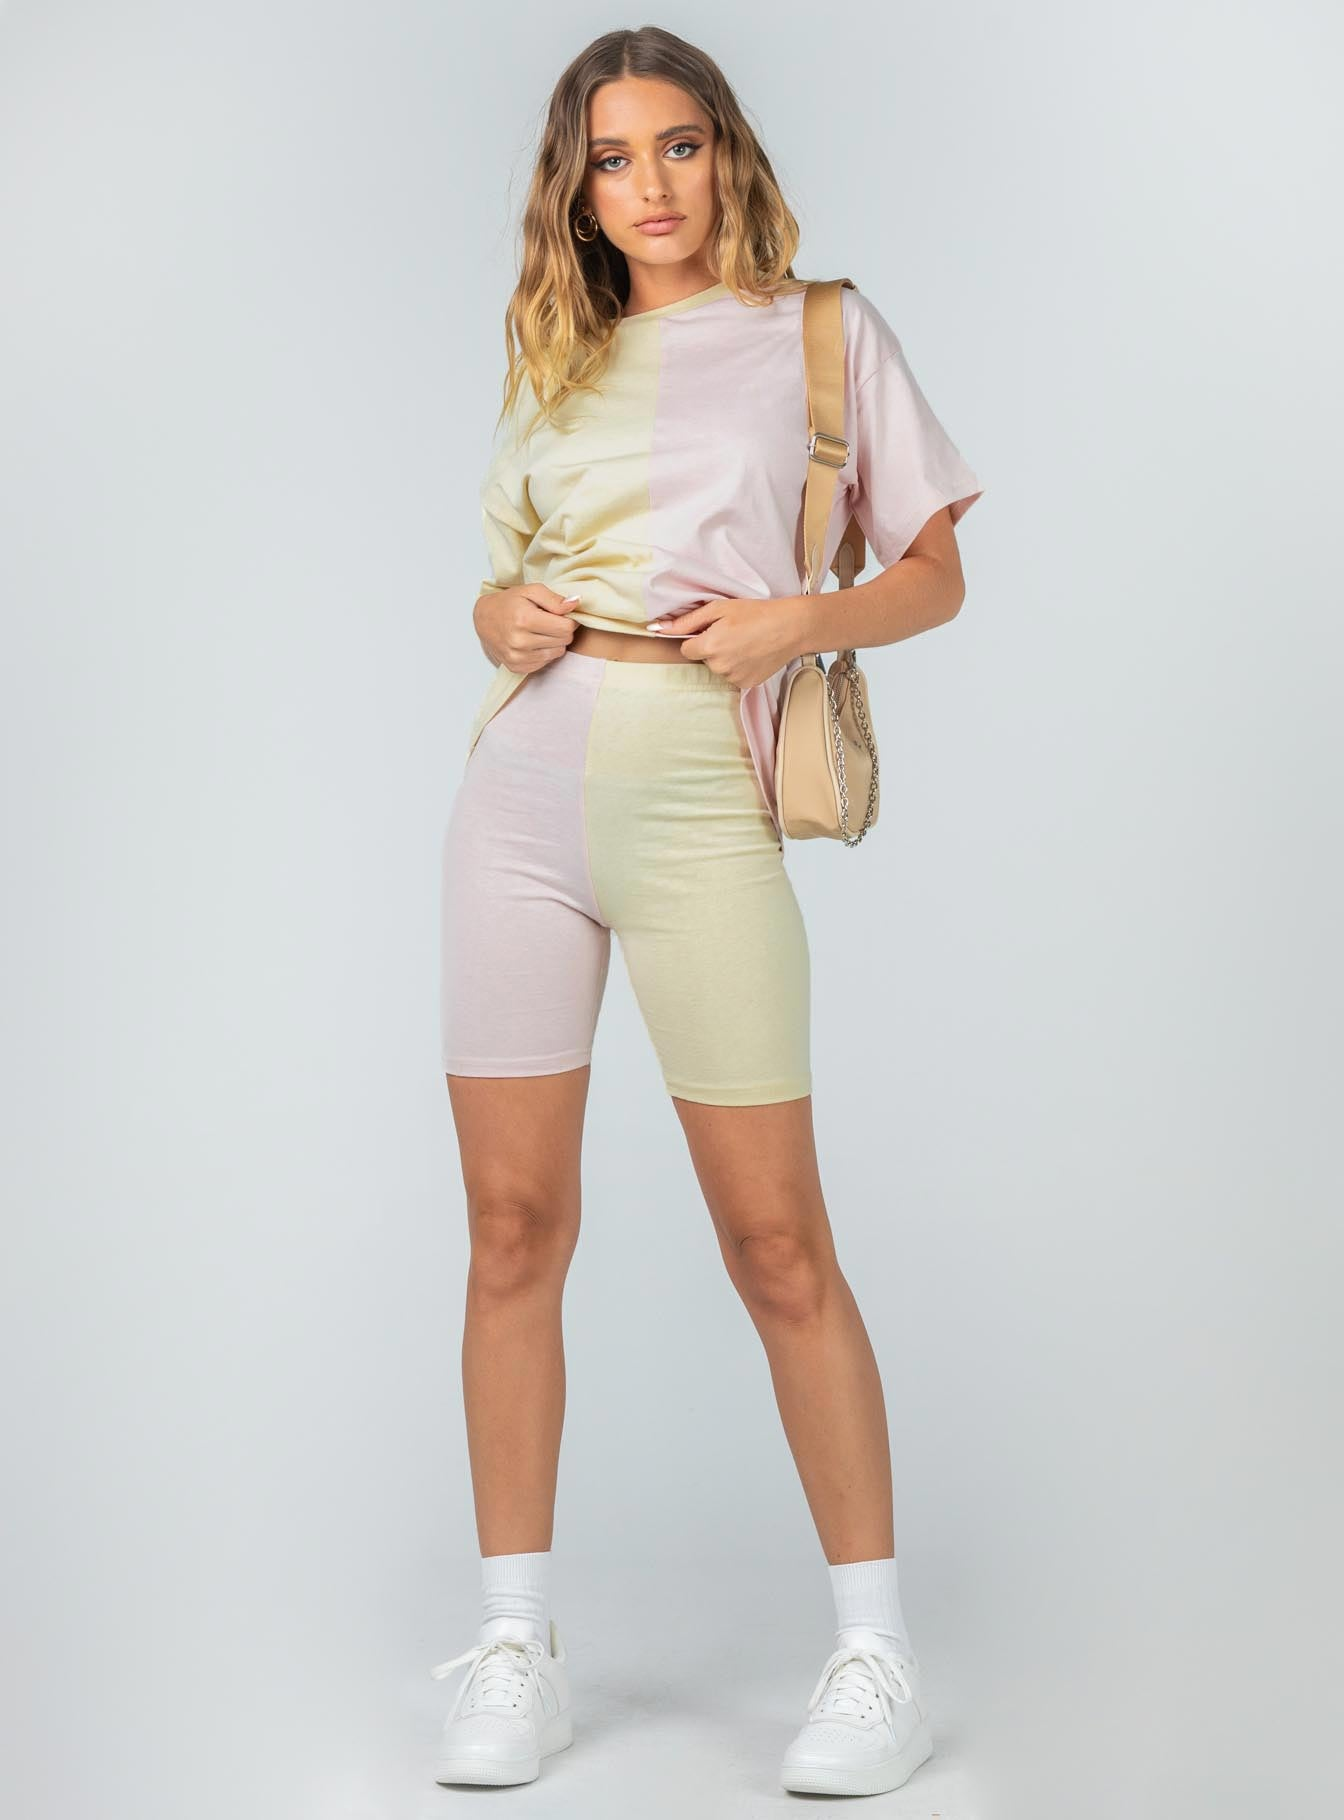 Elisia Shorts Yellow / Pink